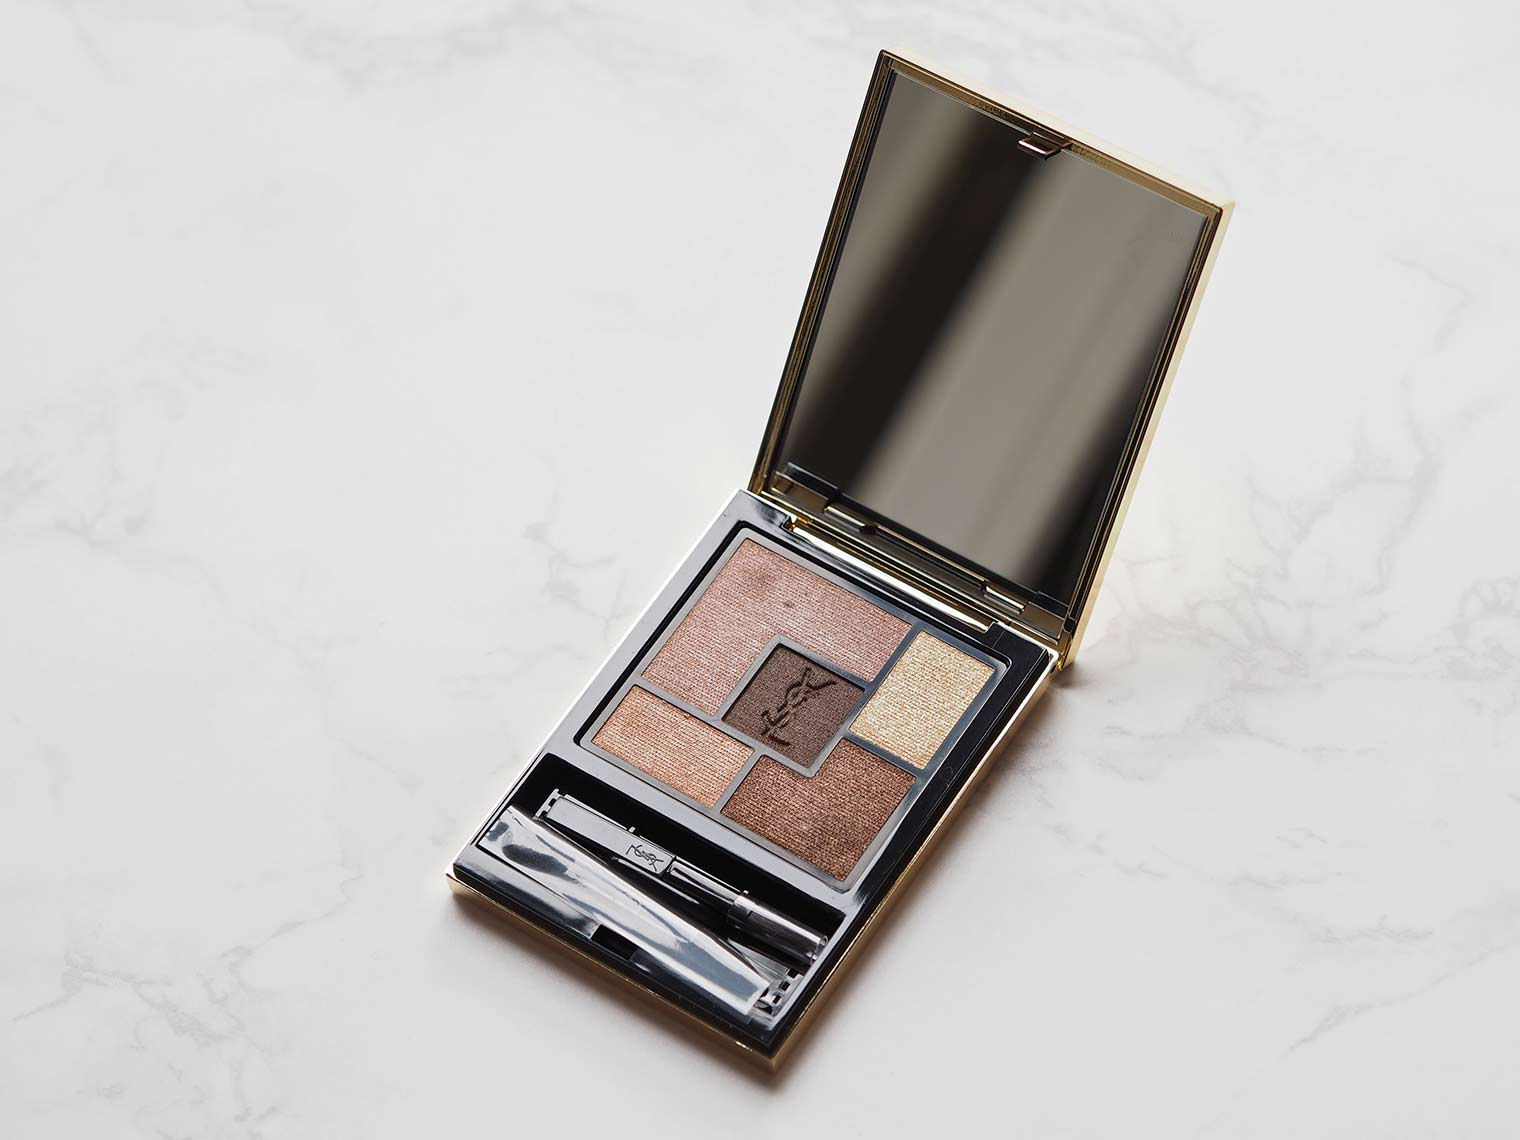 YSL beauty Couture Palette No 14